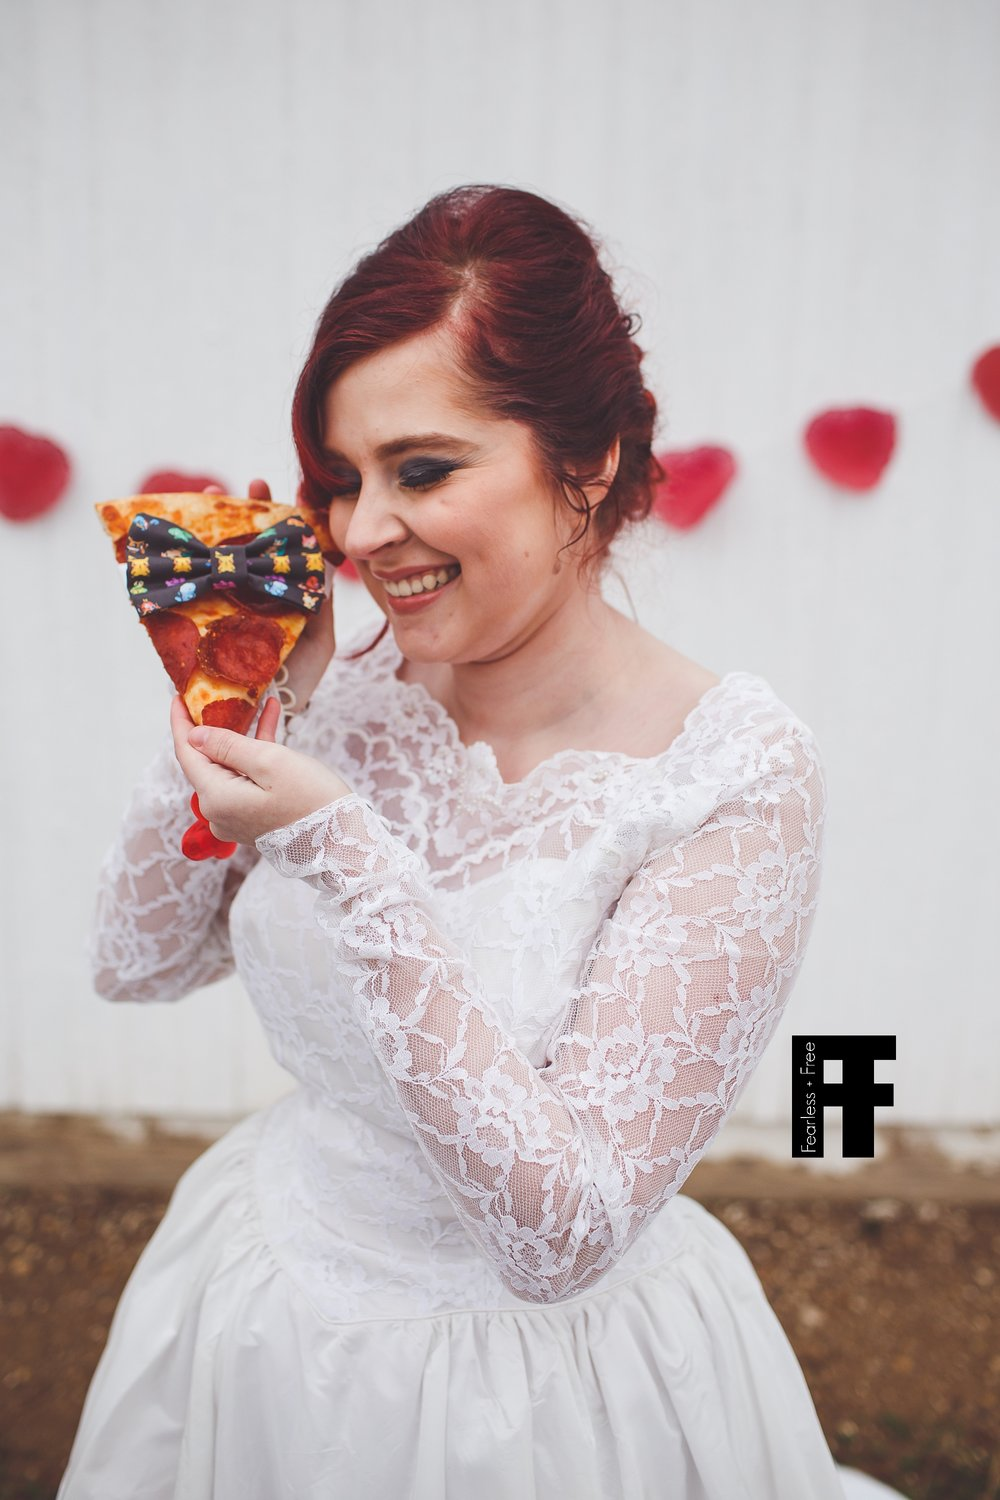 fearlessfreeseniors-columbus-ohio-senior-photographer-pizza-bride-girl-marries-pizza-wearing-bowtie